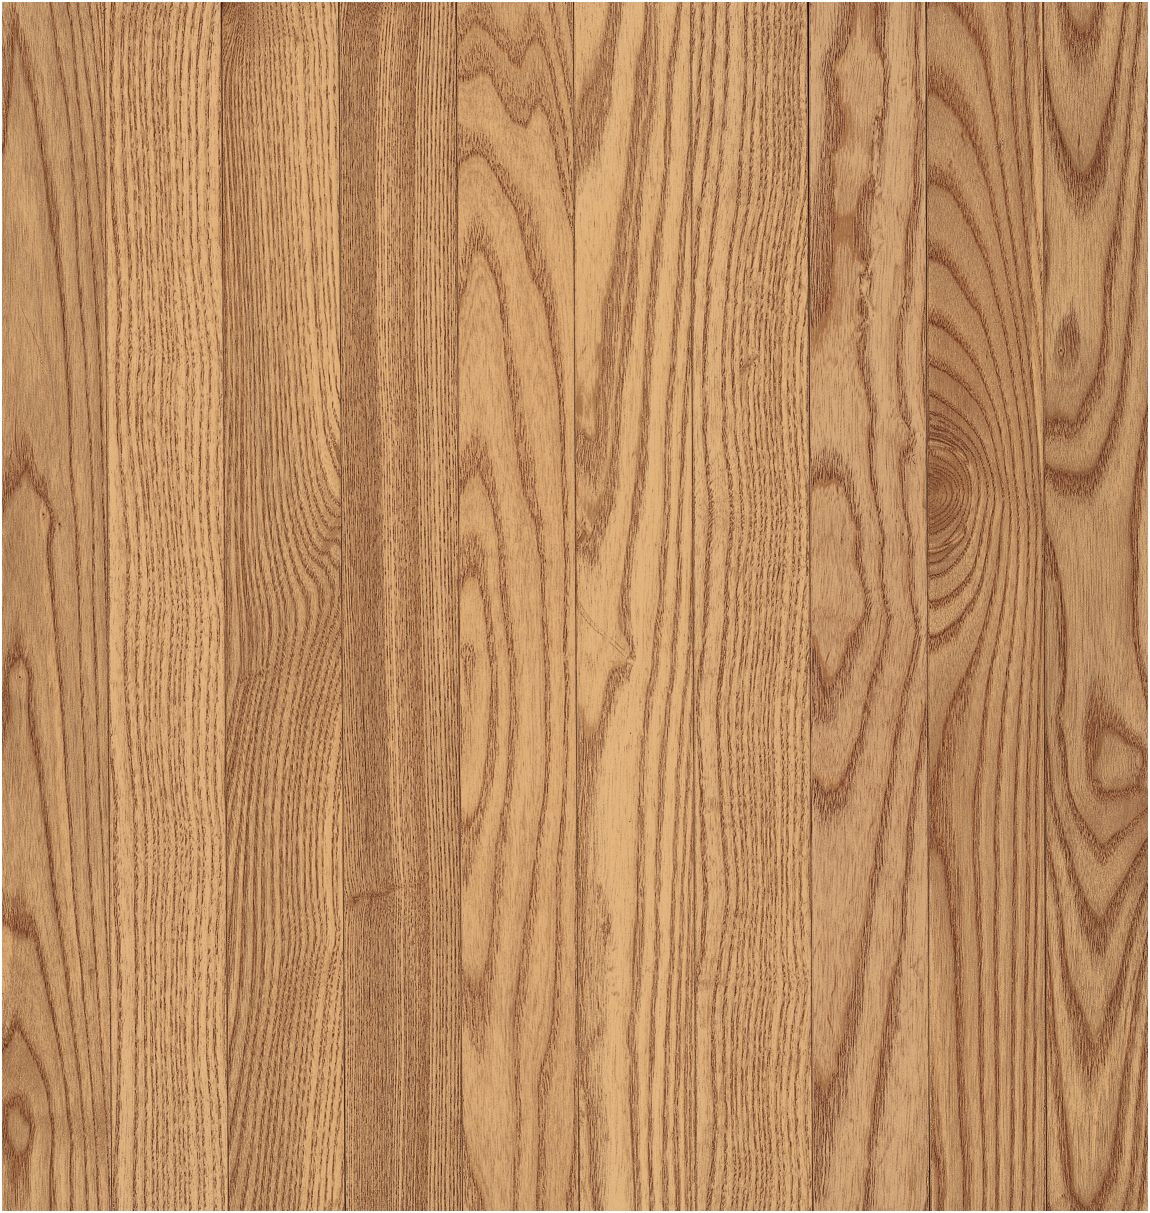 bruce 5 16 hardwood flooring of what thickness for laminate flooring photographies 8mm smoked cherry in related post